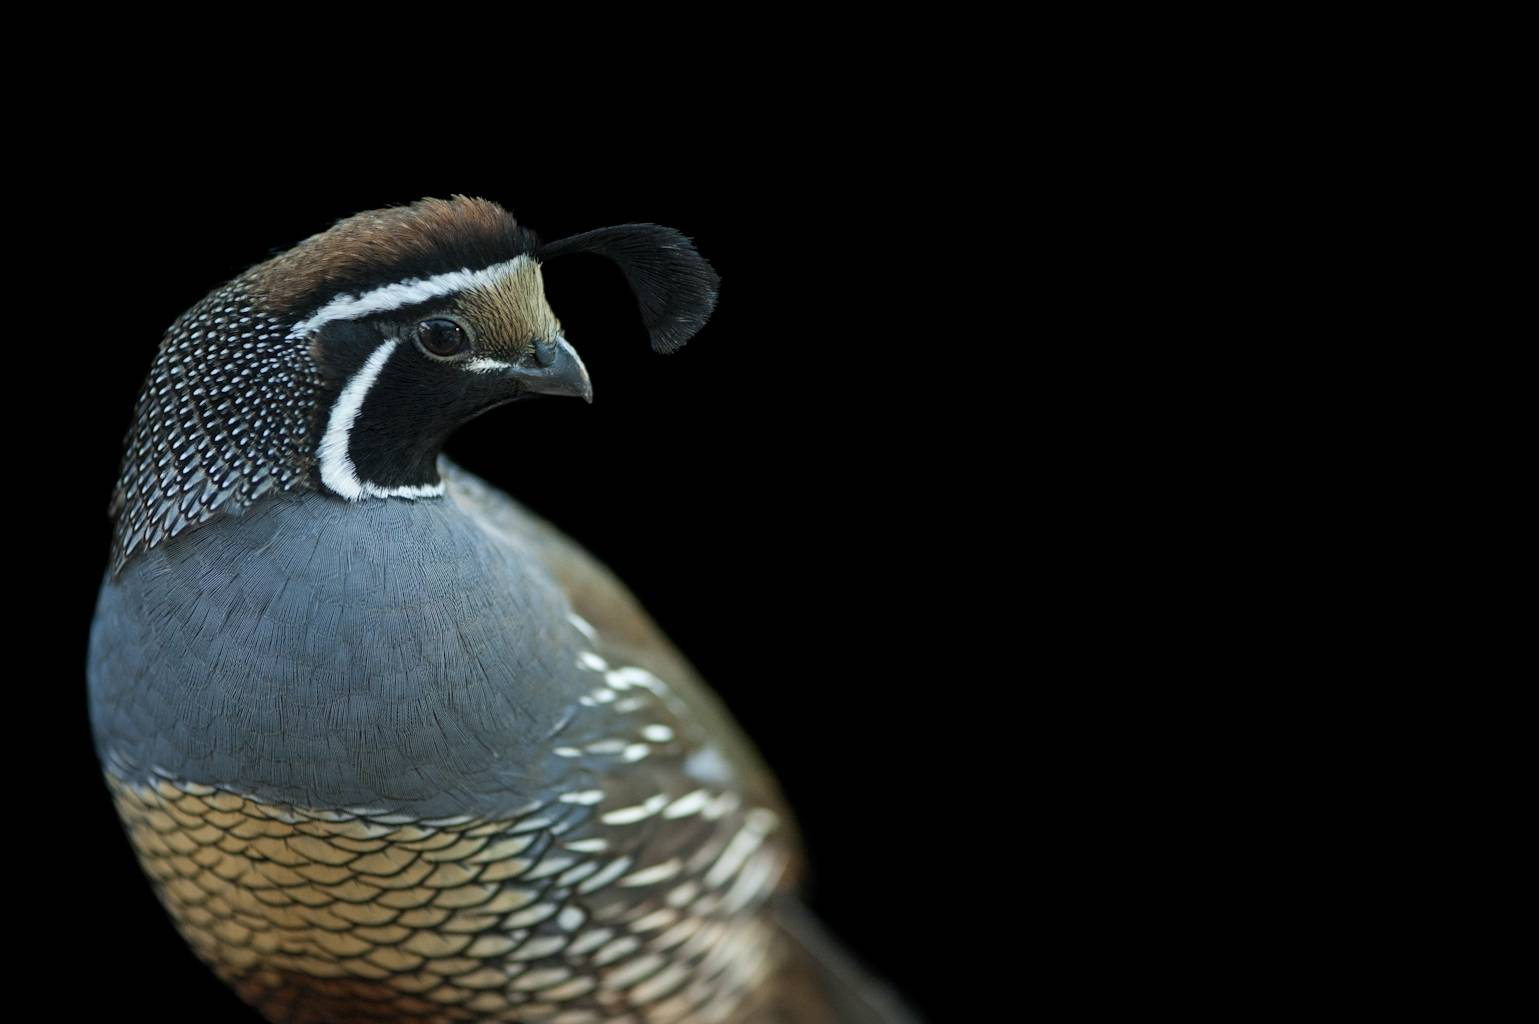 A California quail (Callipepla californica) at Parrots in Paradise, a bird attraction in Glass House Mountains, Queensland.